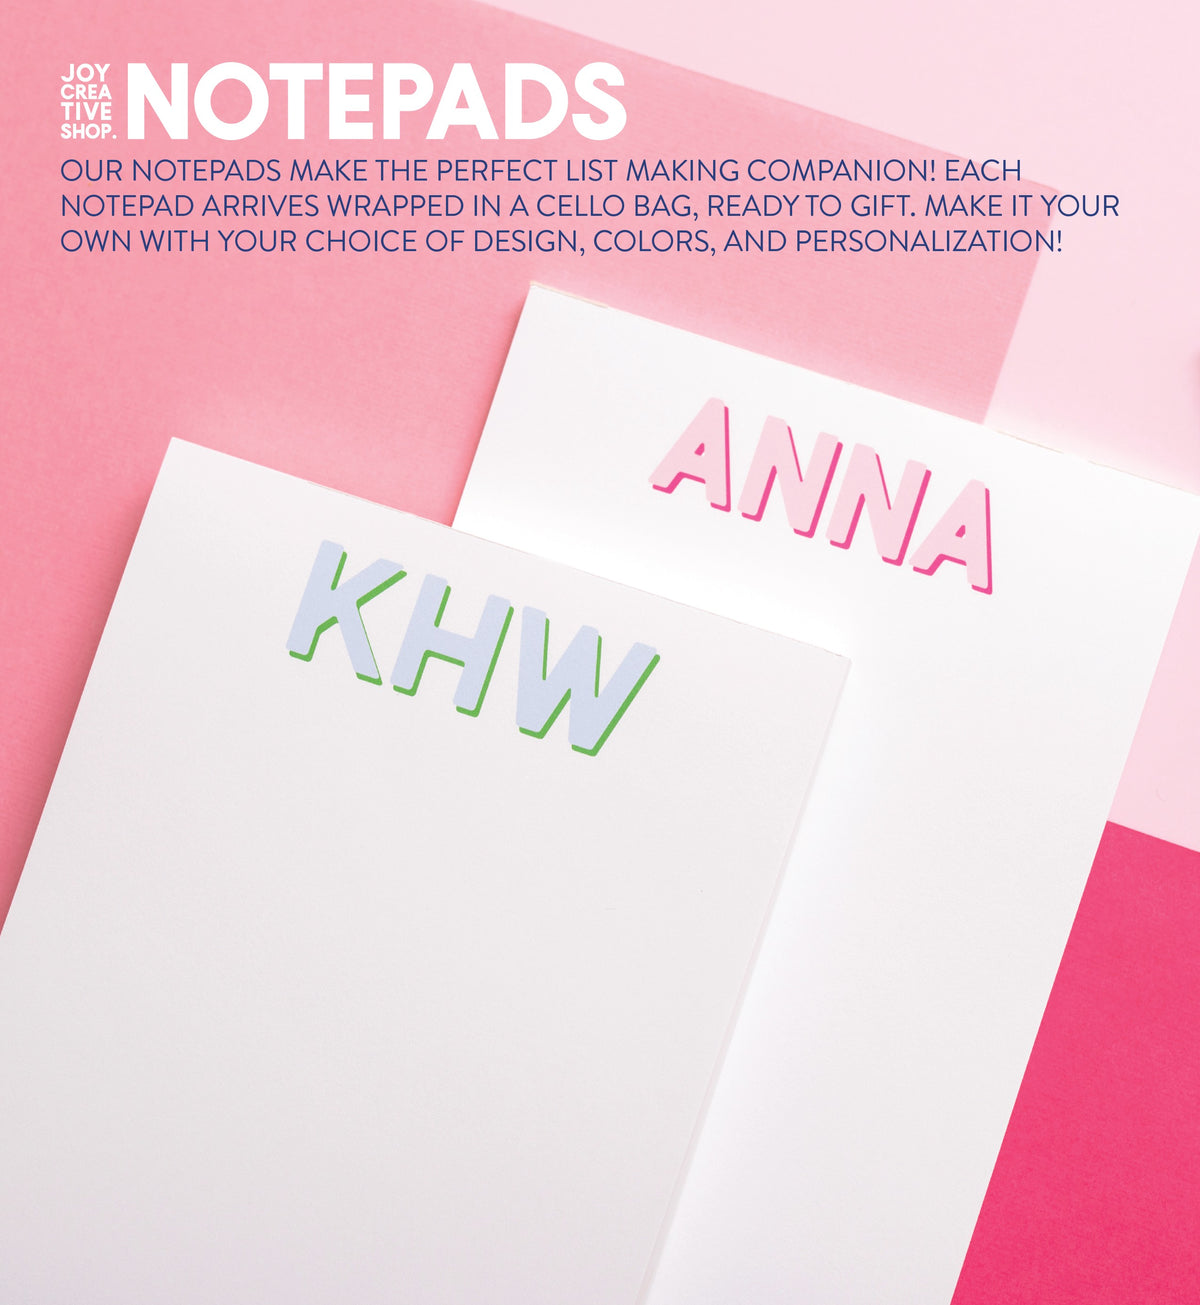 Couples Notepad and Notecard Set - Joy Creative Shop